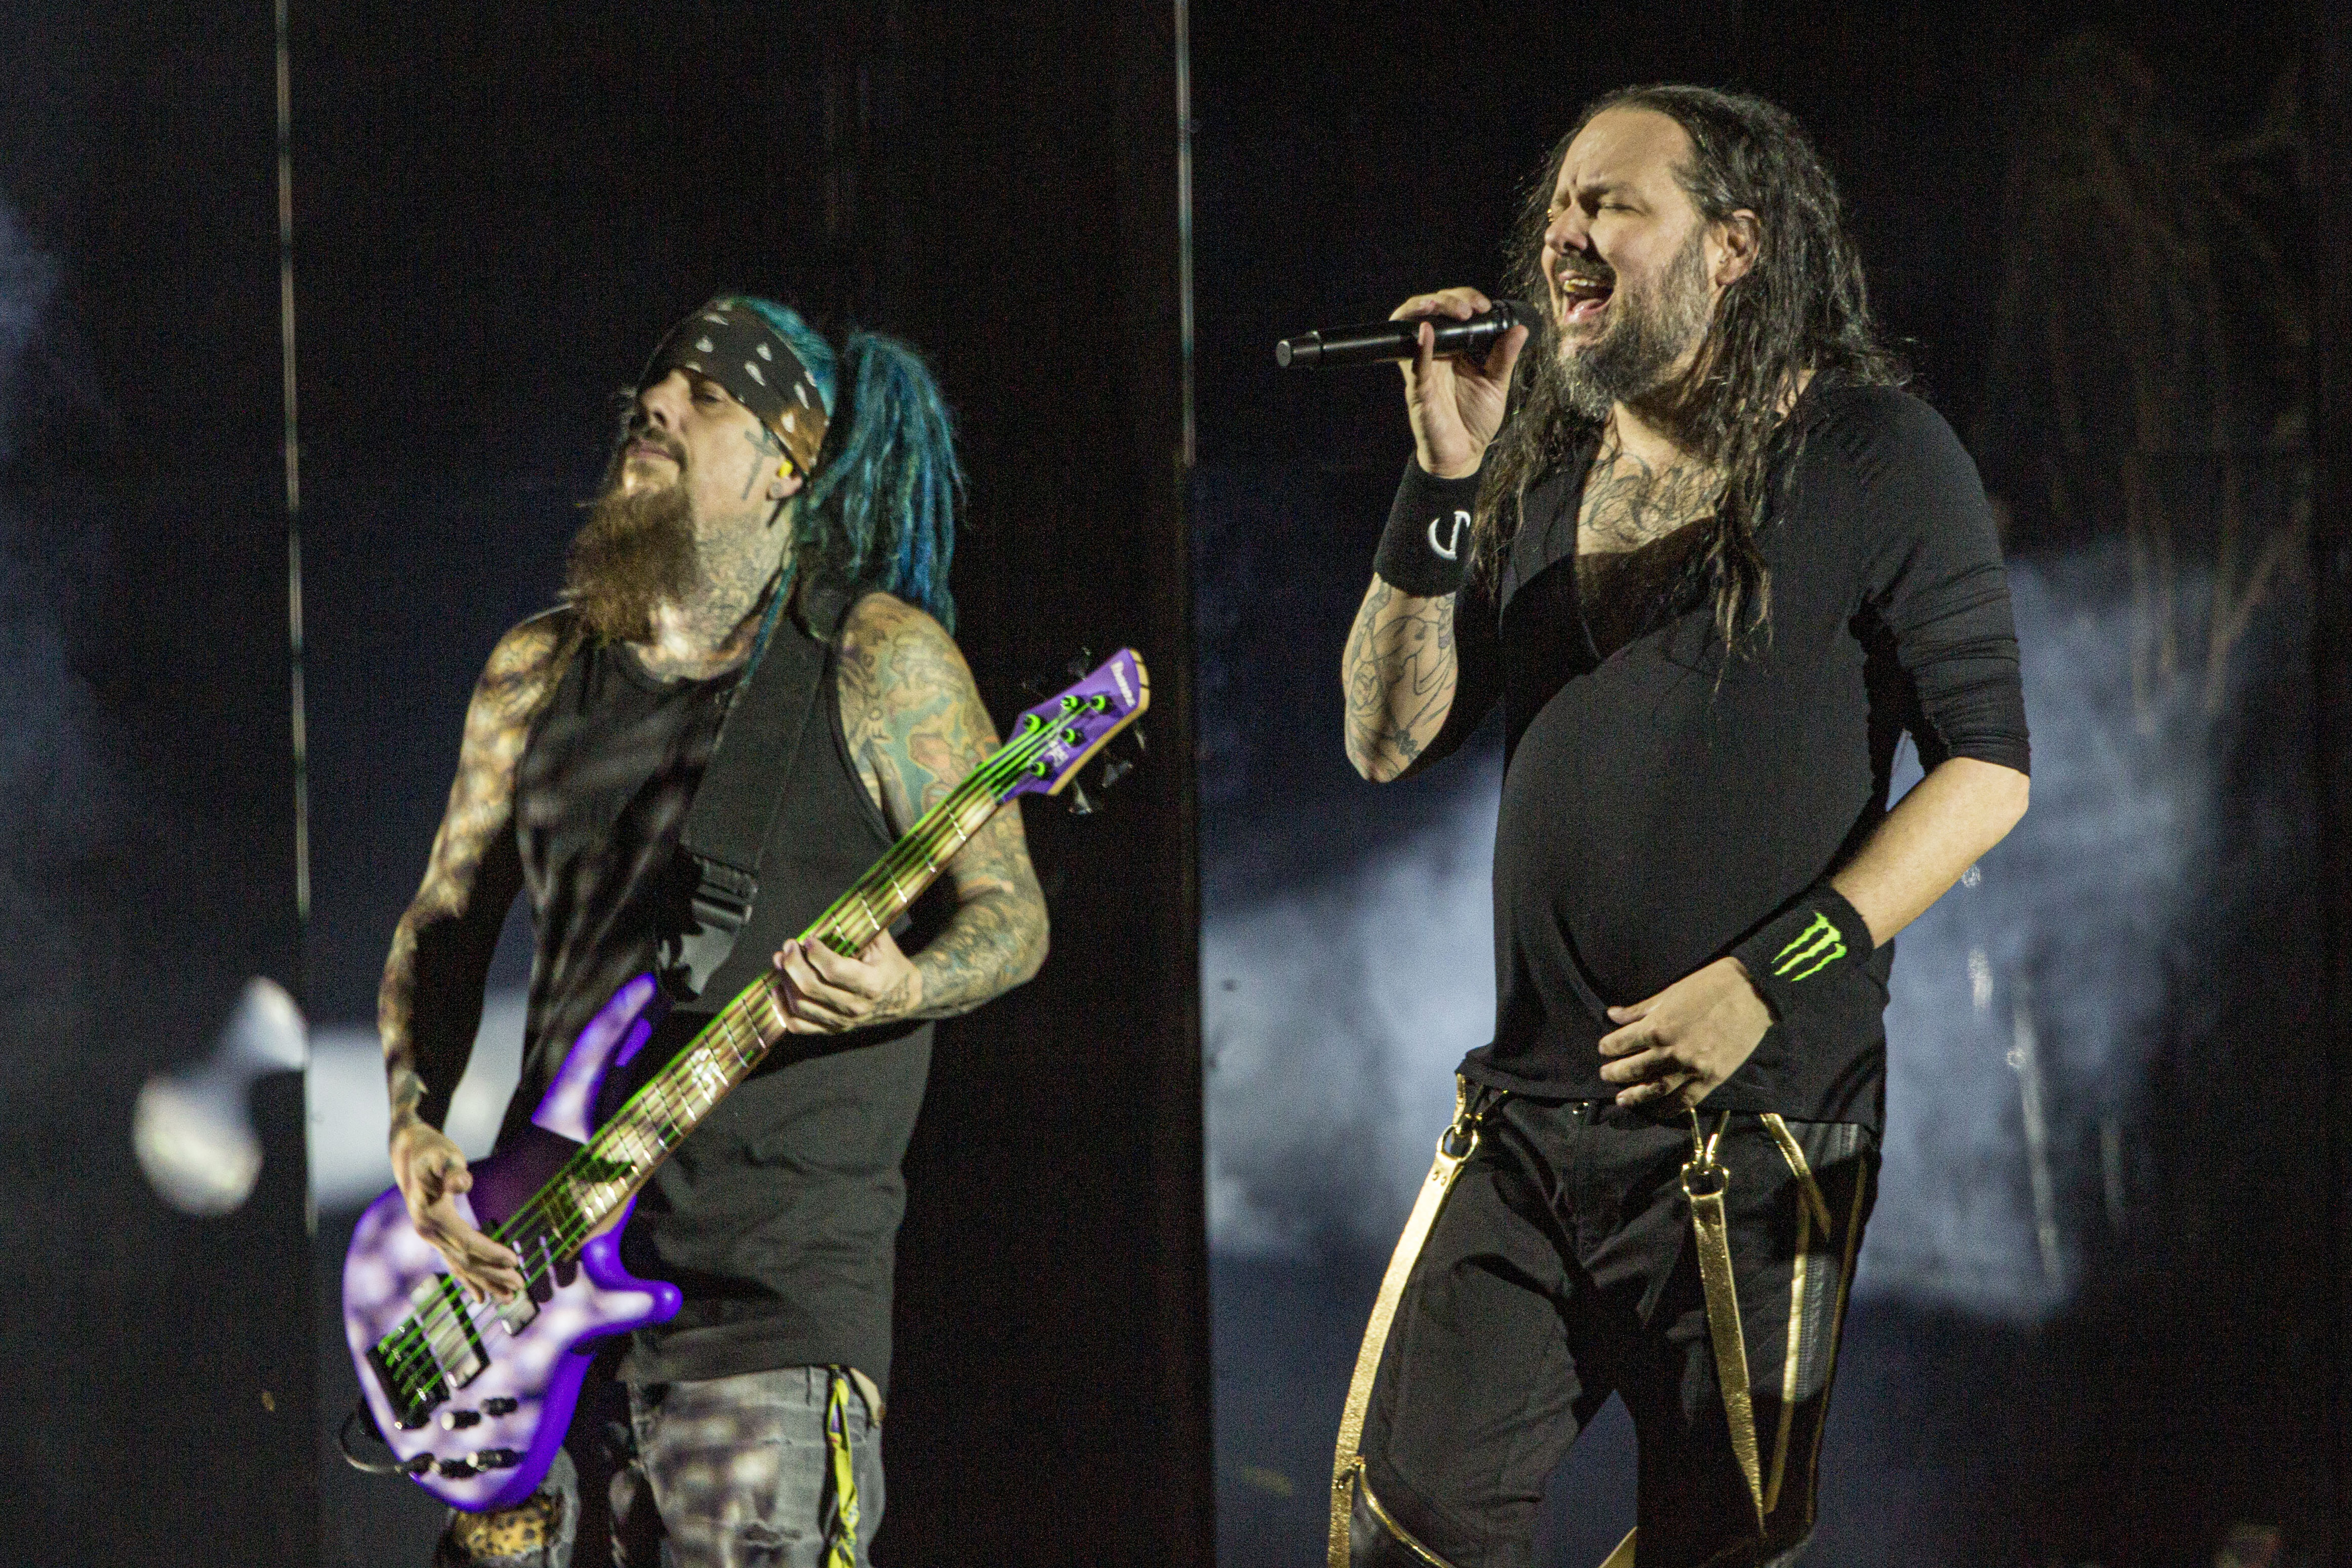 Korn Performs At North Island Credit Union Amphitheatre